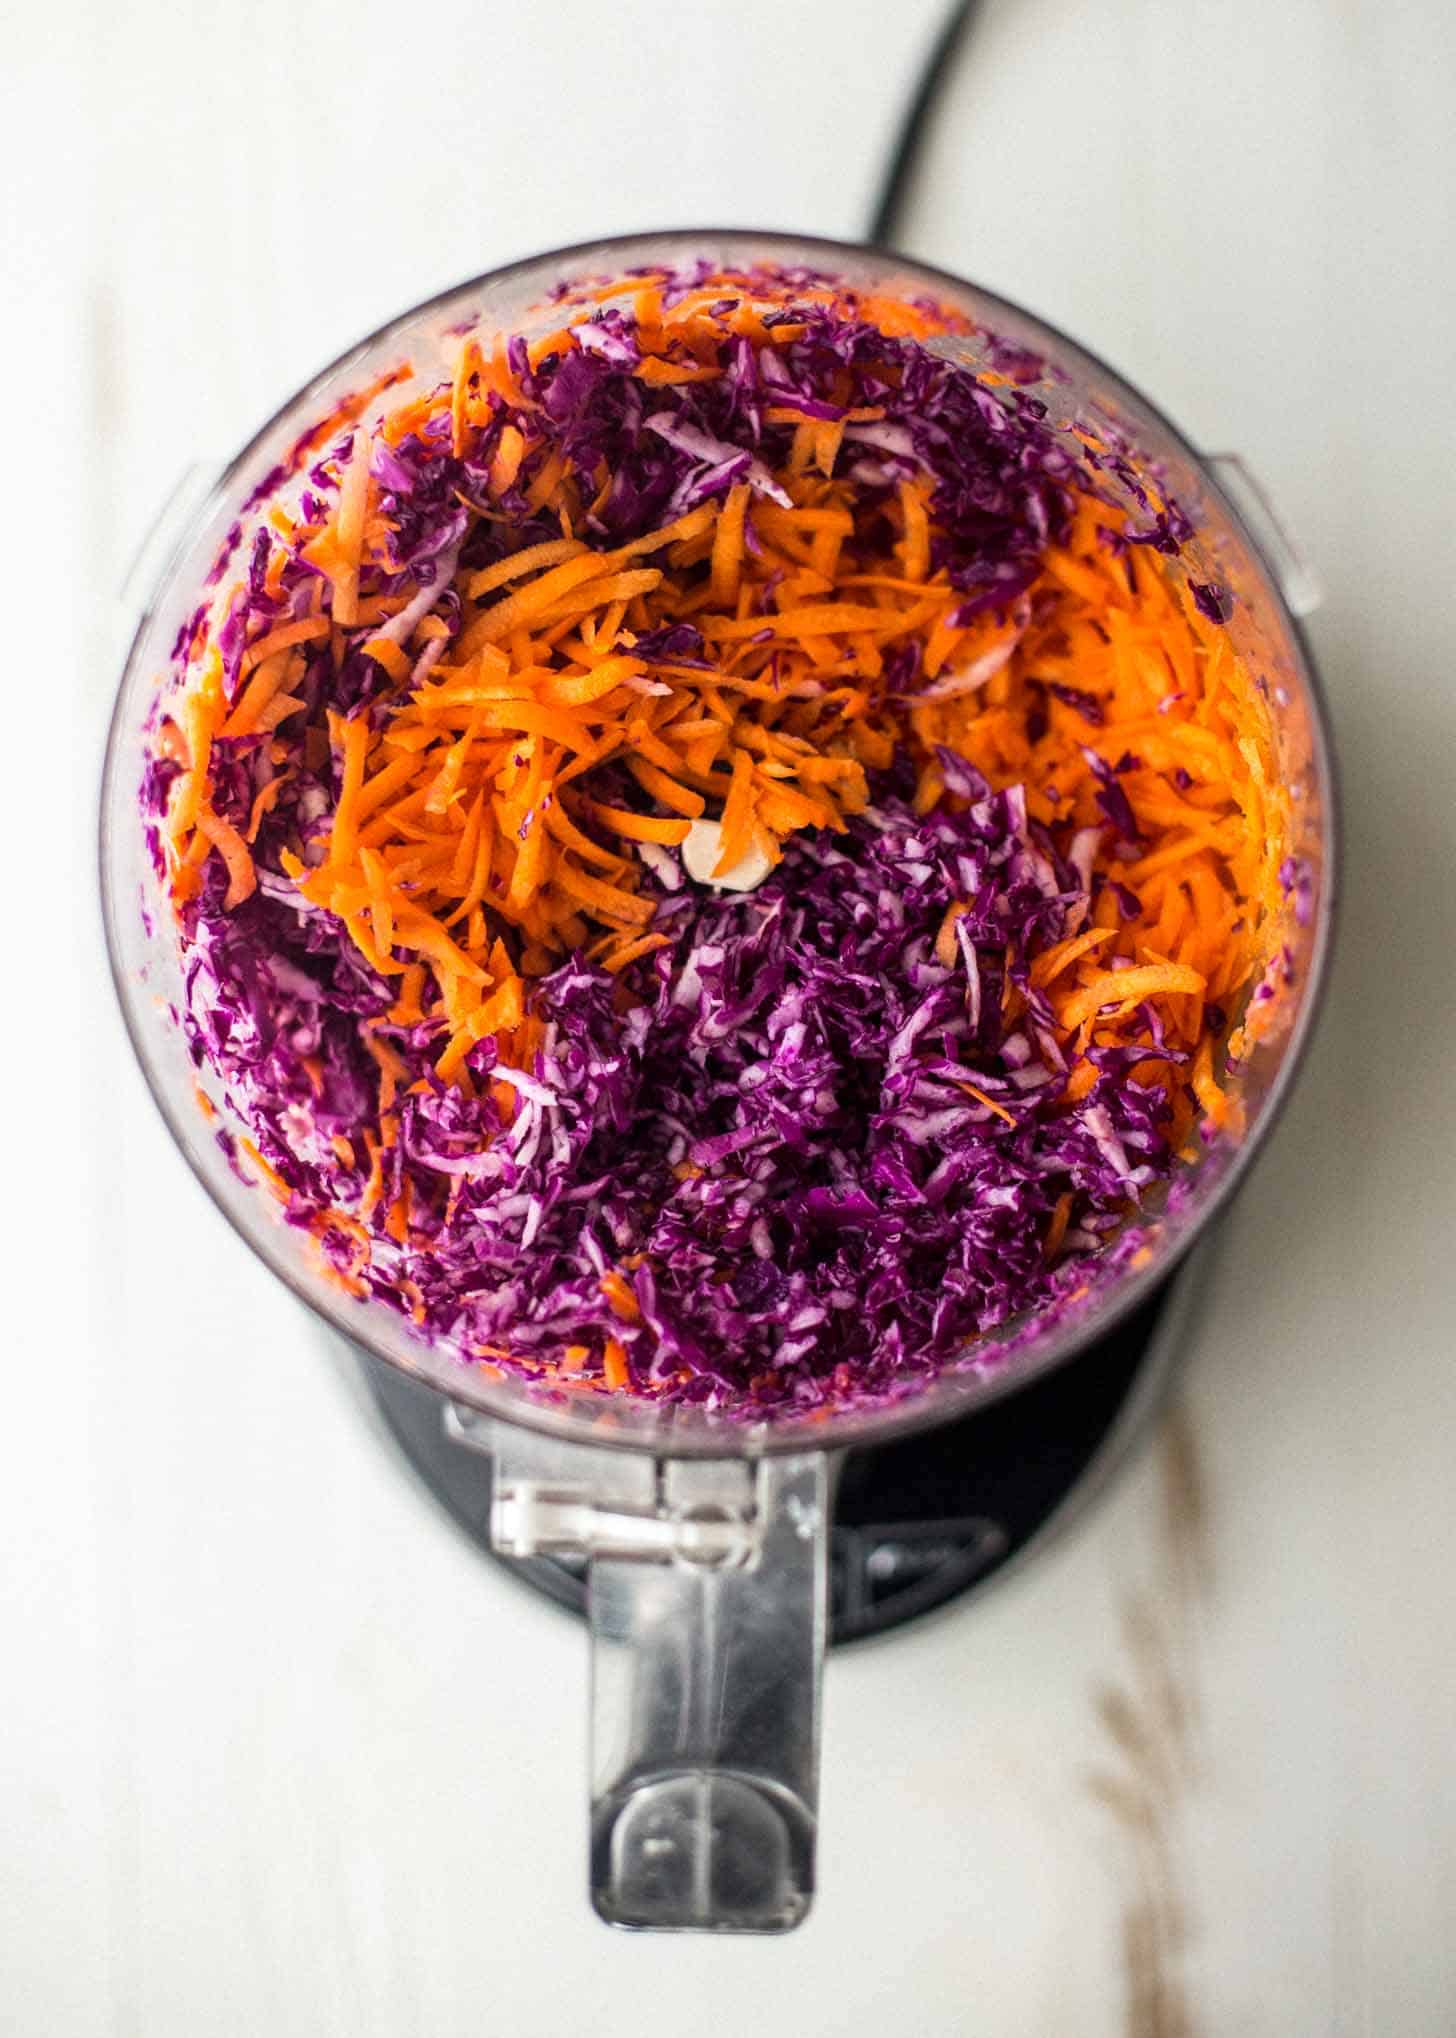 carrots and cabbage in a food processor